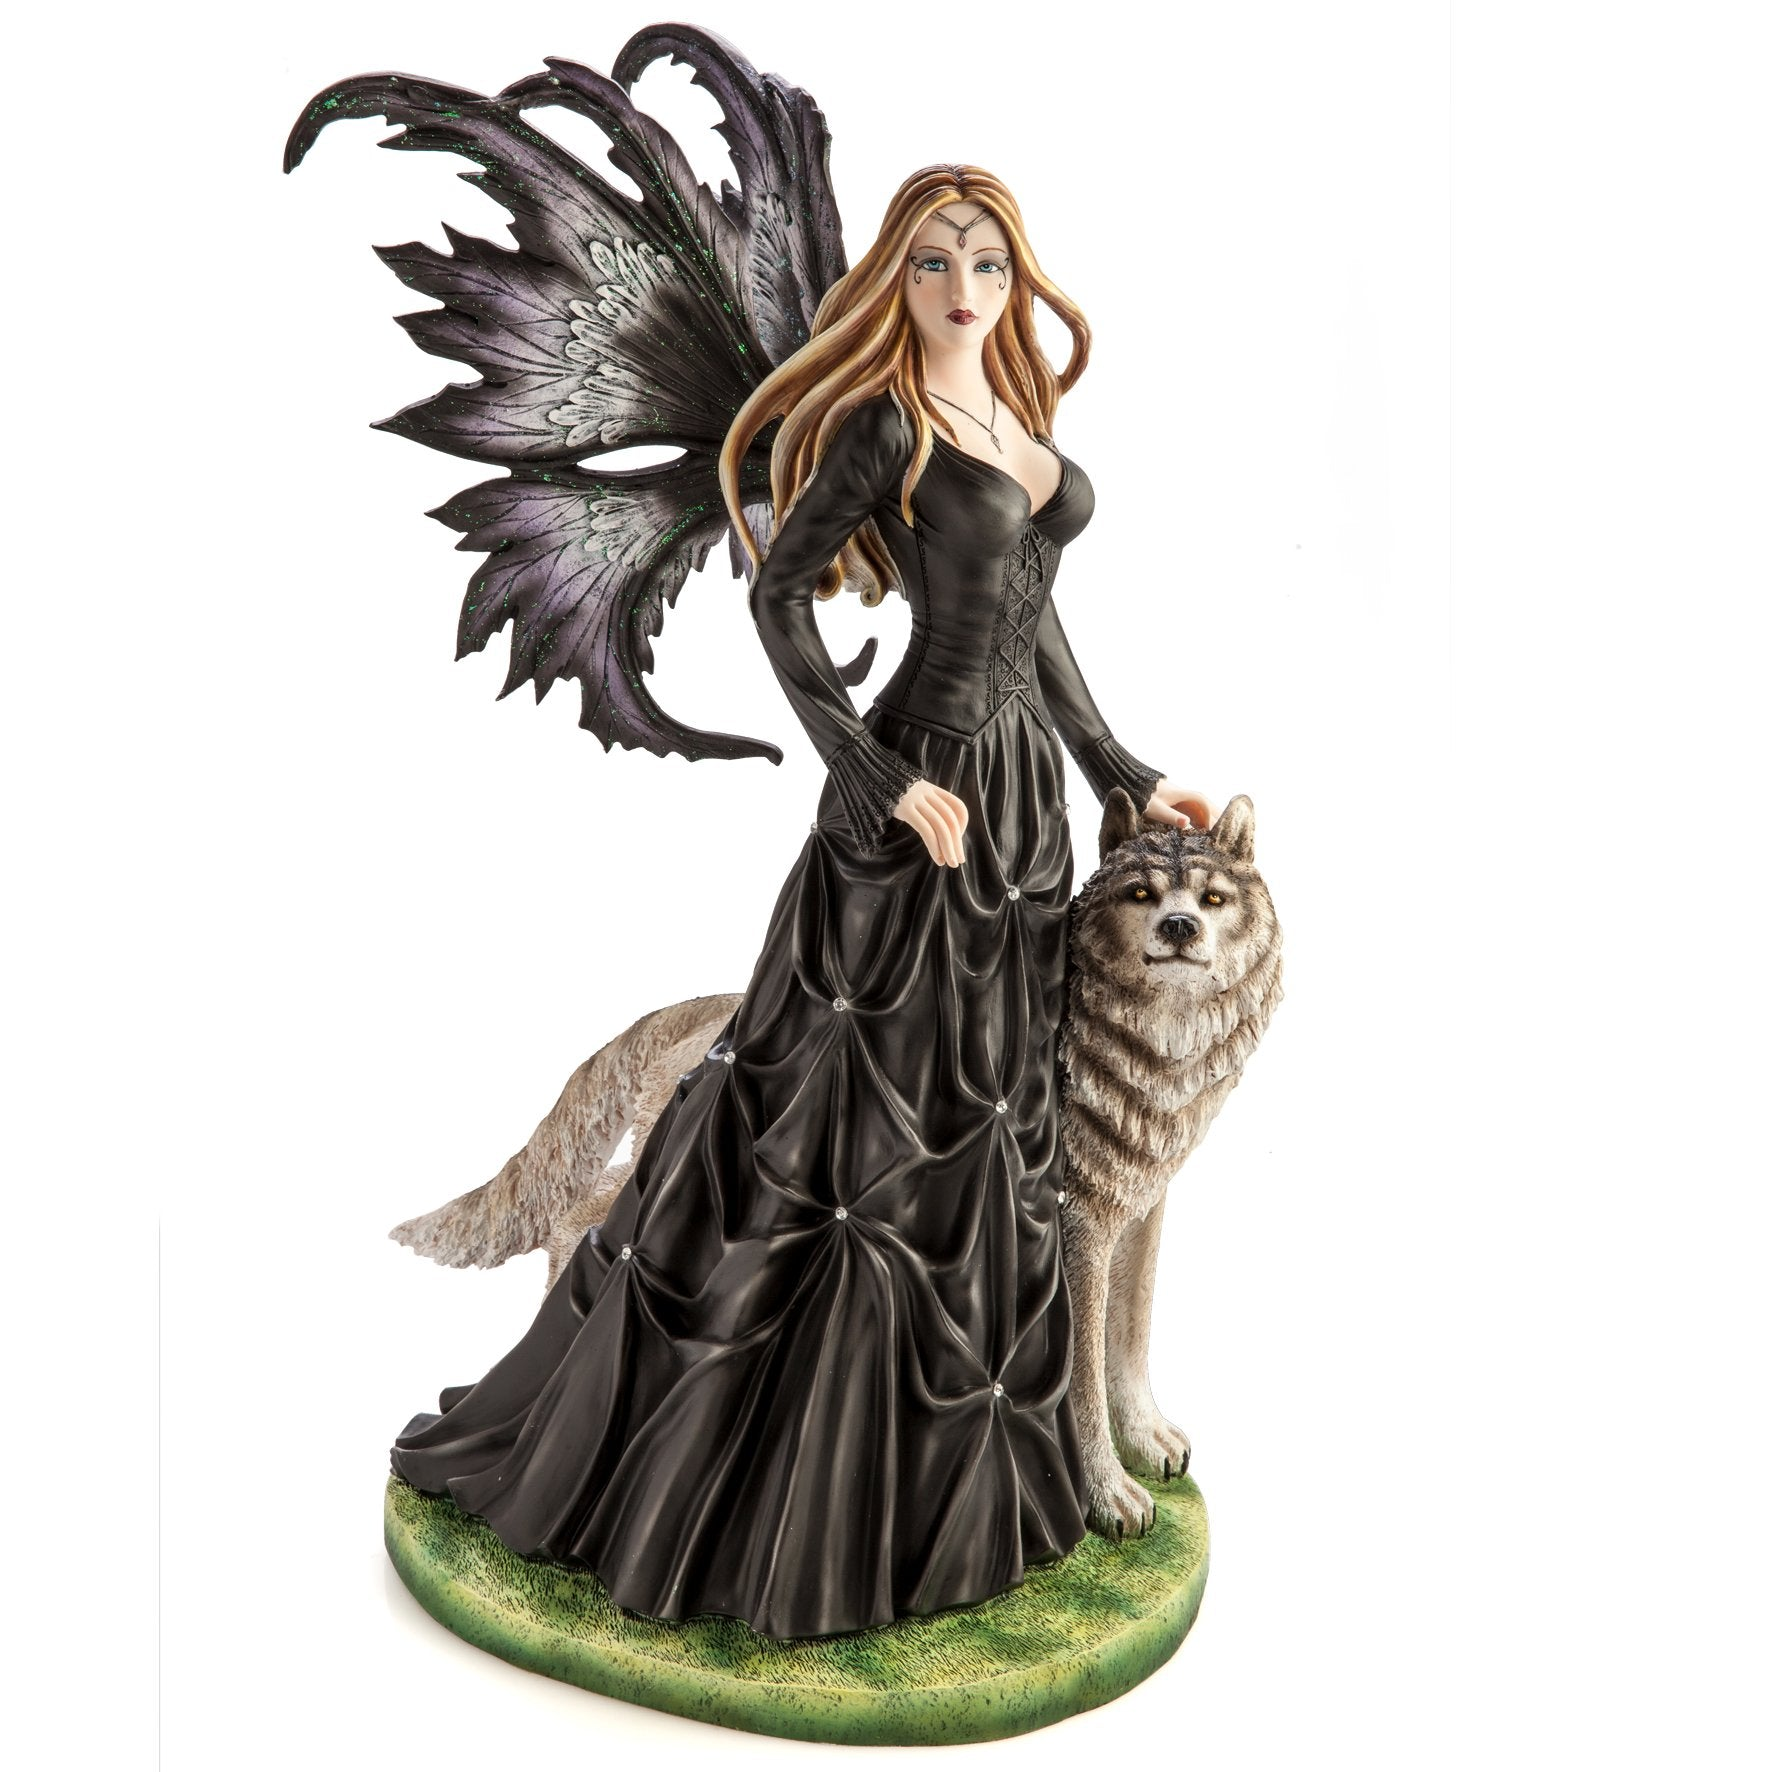 Large Black Fairy Princess with White Wolf - Rivendell Shop NZ